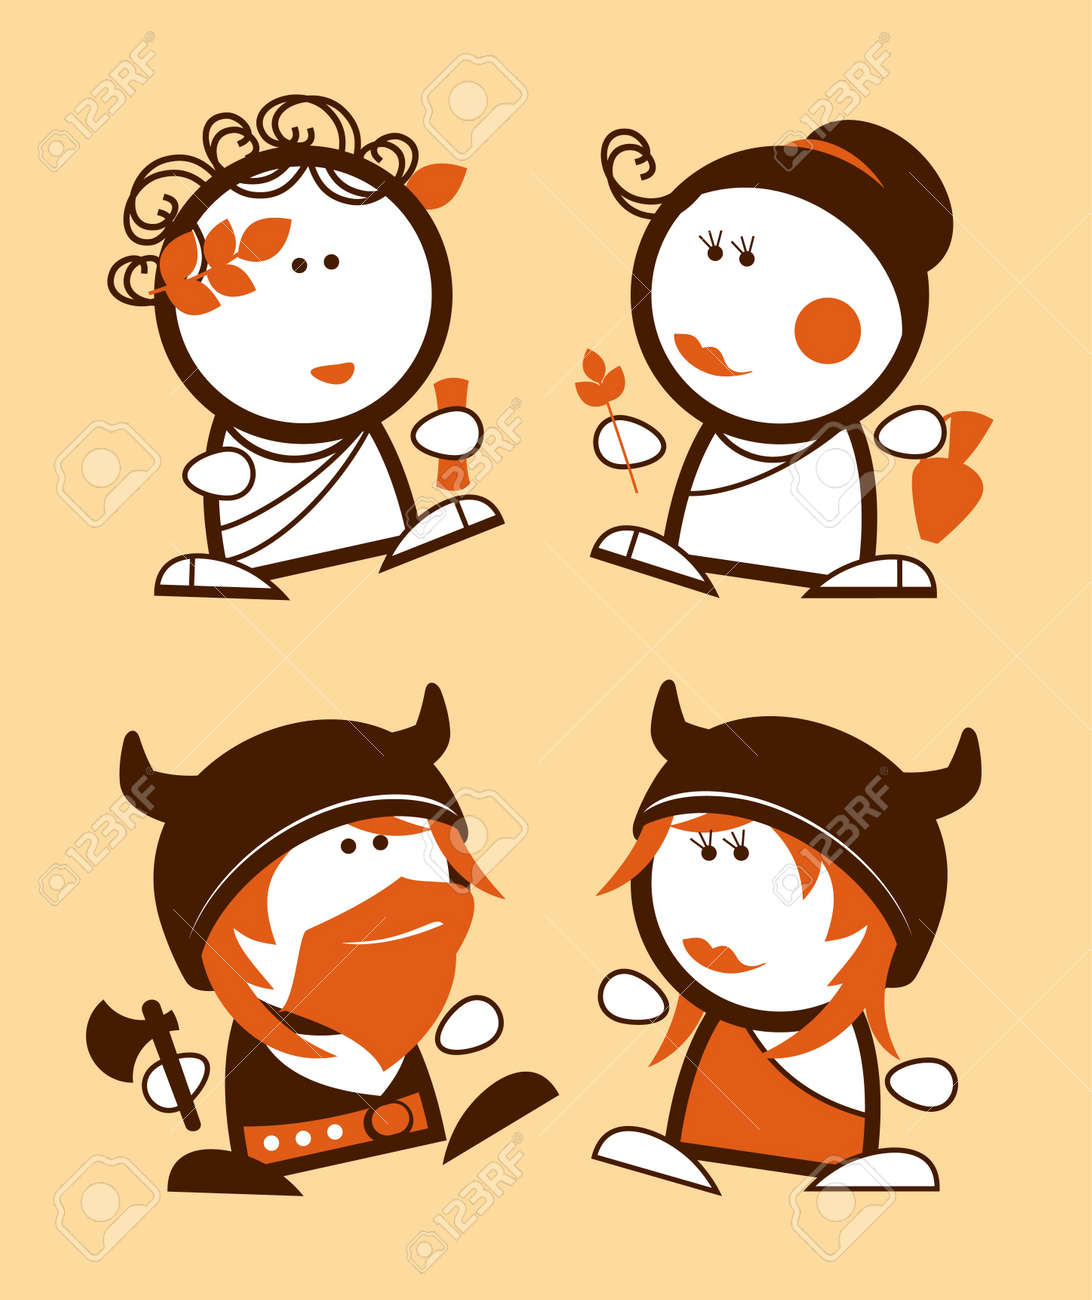 Ancient Greeks and Vikings, historical funny people icons Stock Vector - 12486451